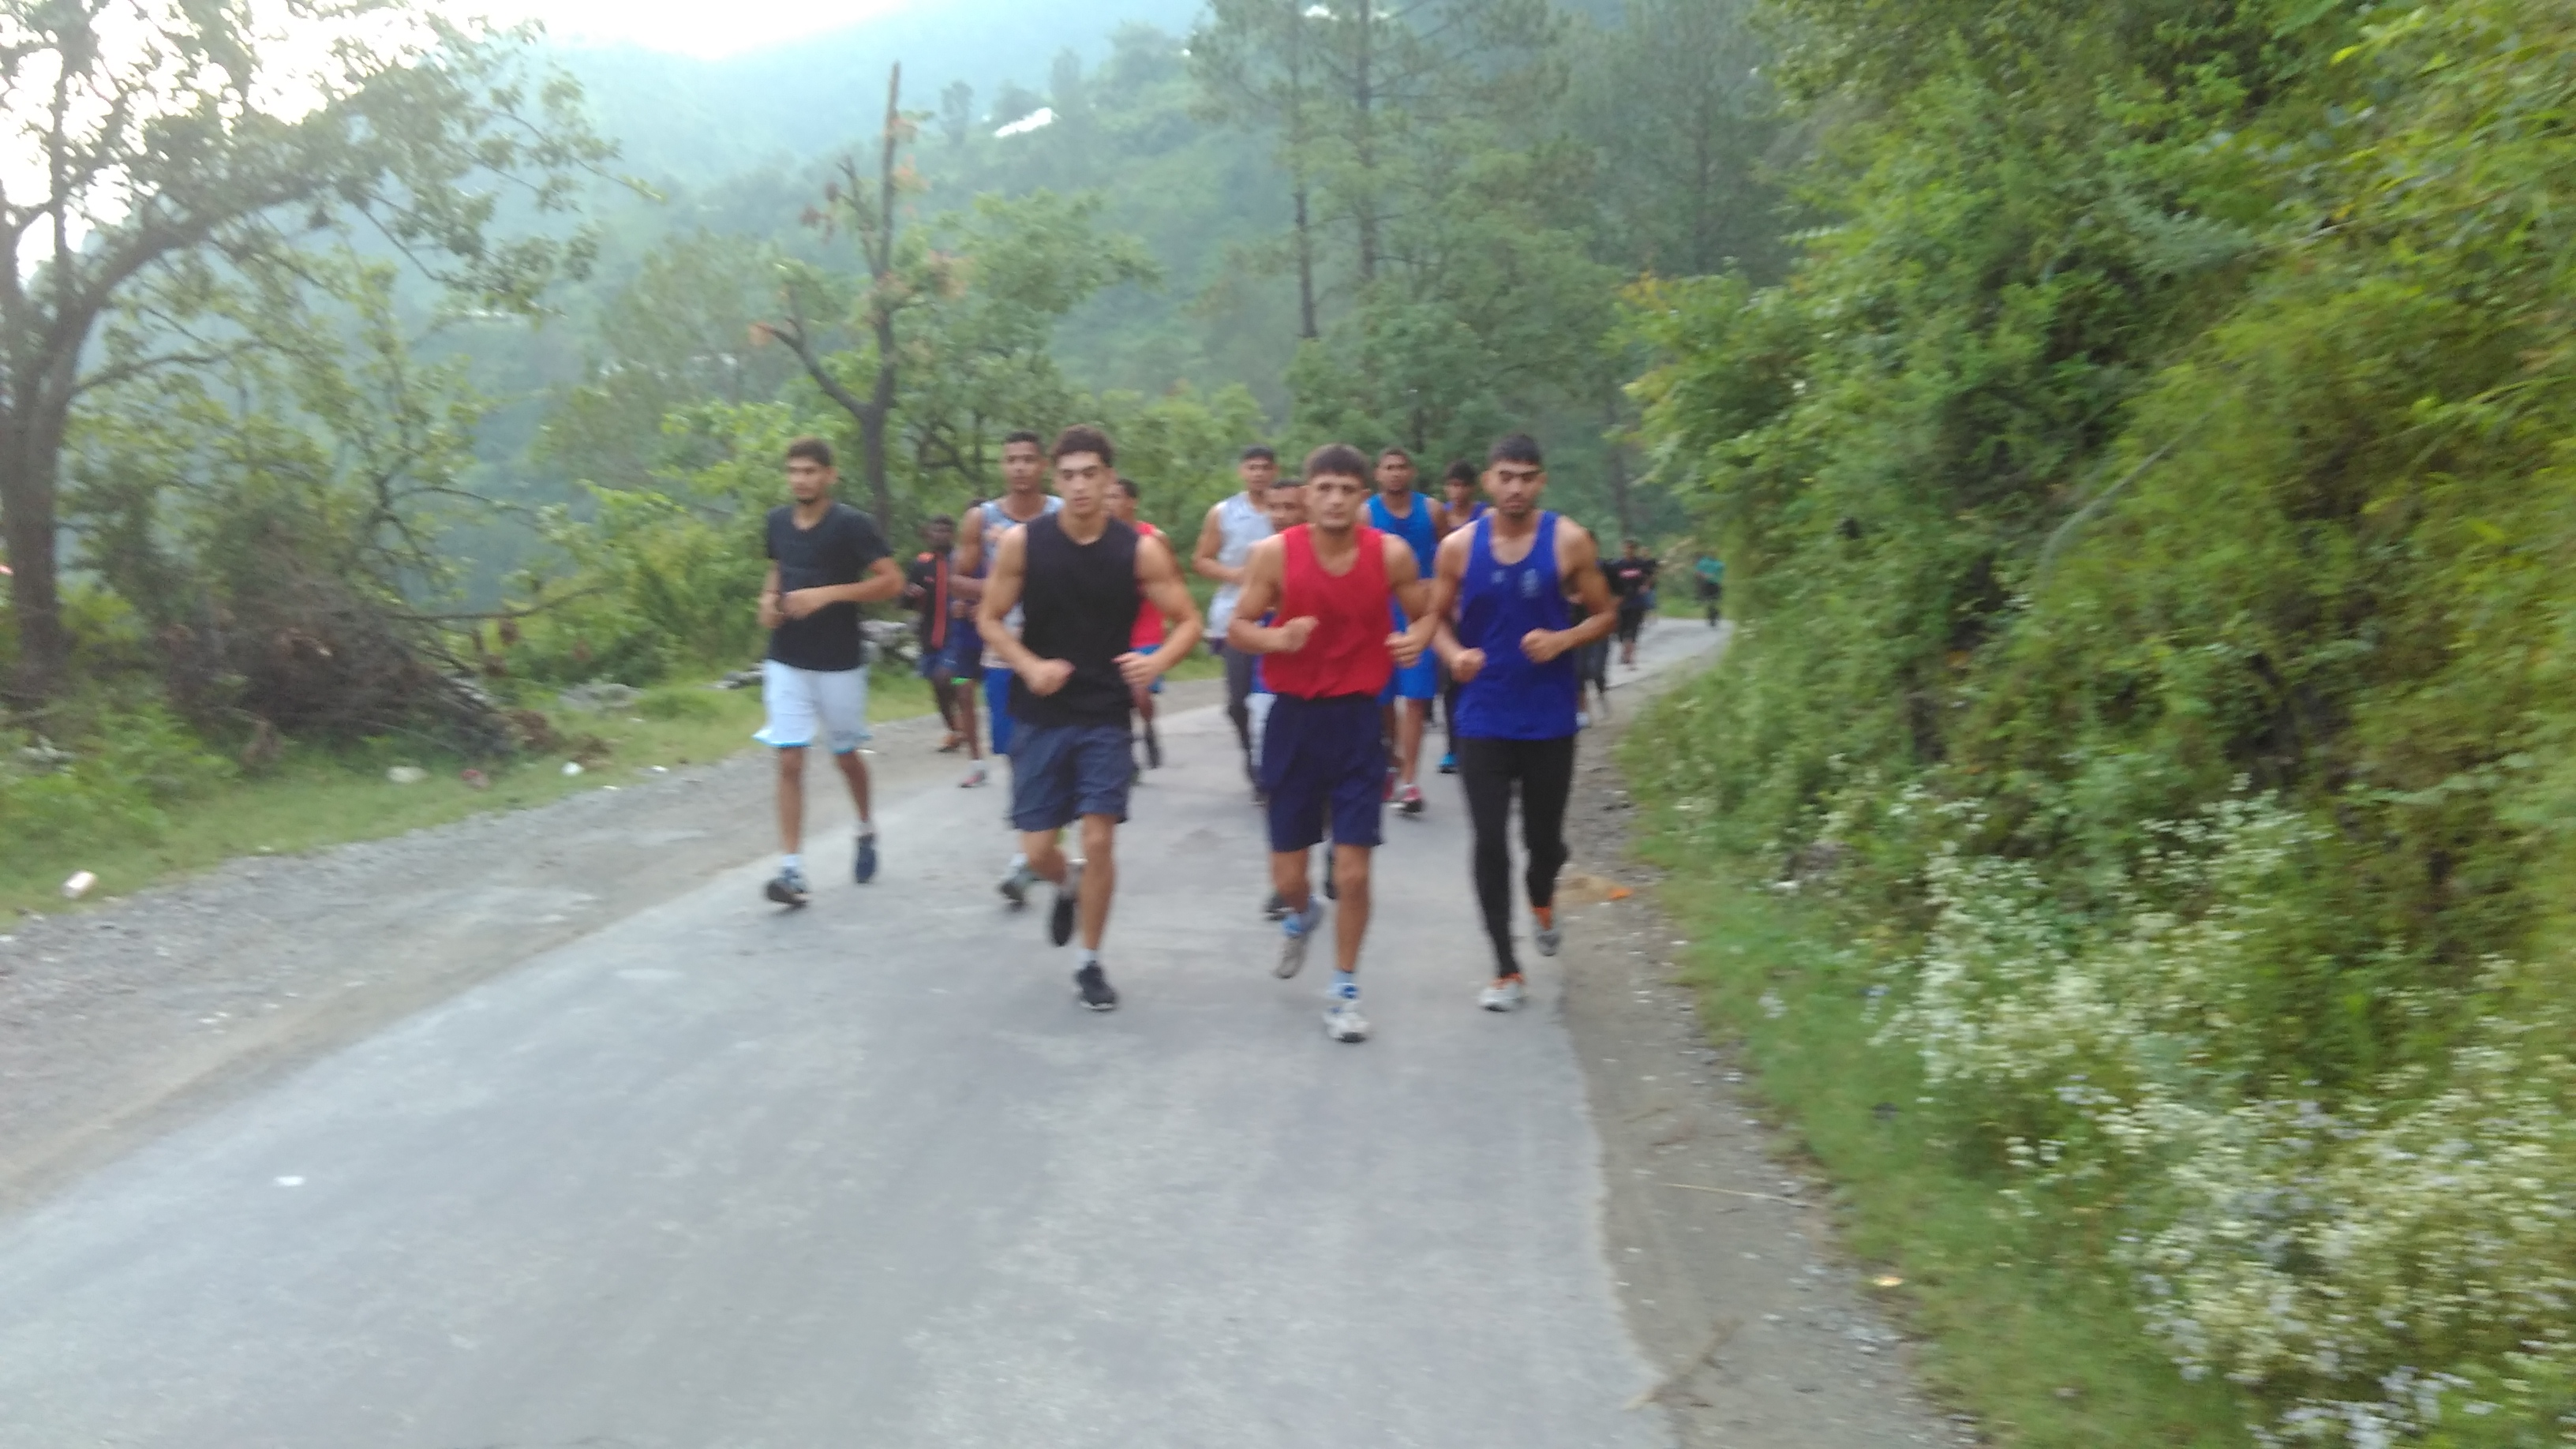 Sports Authority of India National Boxing Academy Rohtak's Trainees During Their Cross Country Run to Chail-3